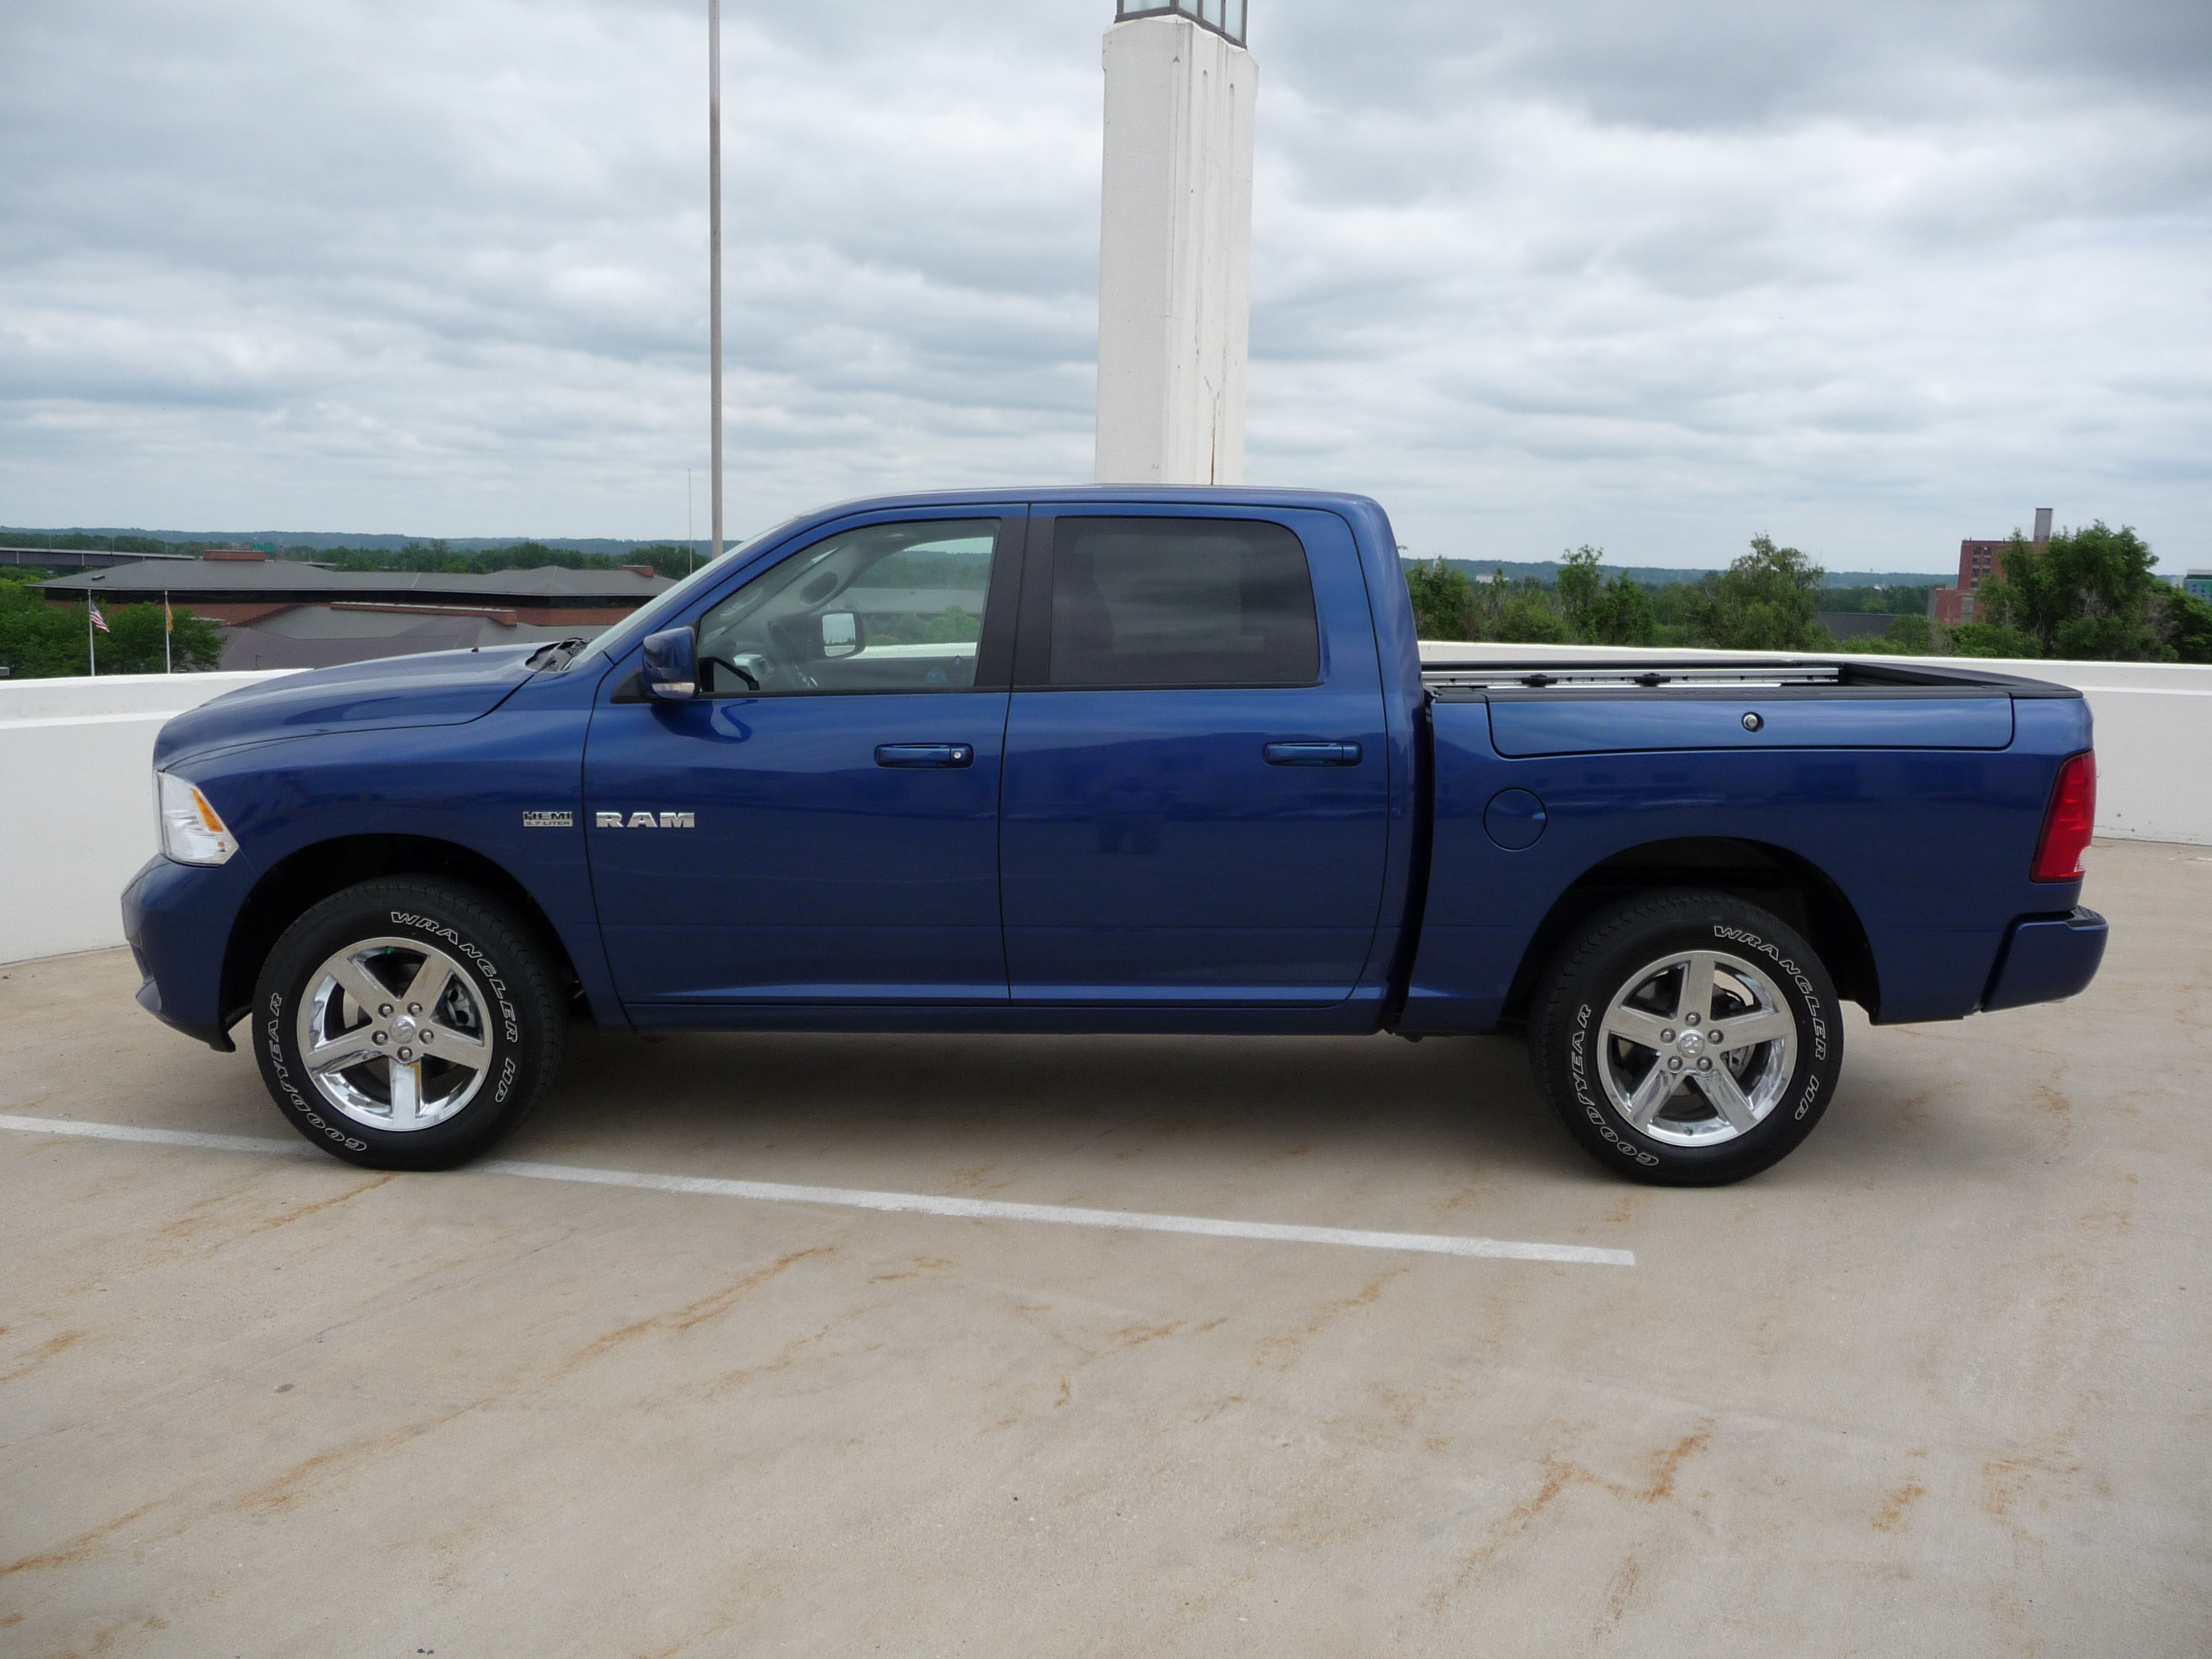 the9jeep 2009 dodge ram 1500 regular cab specs photos modification info at cardomain. Black Bedroom Furniture Sets. Home Design Ideas